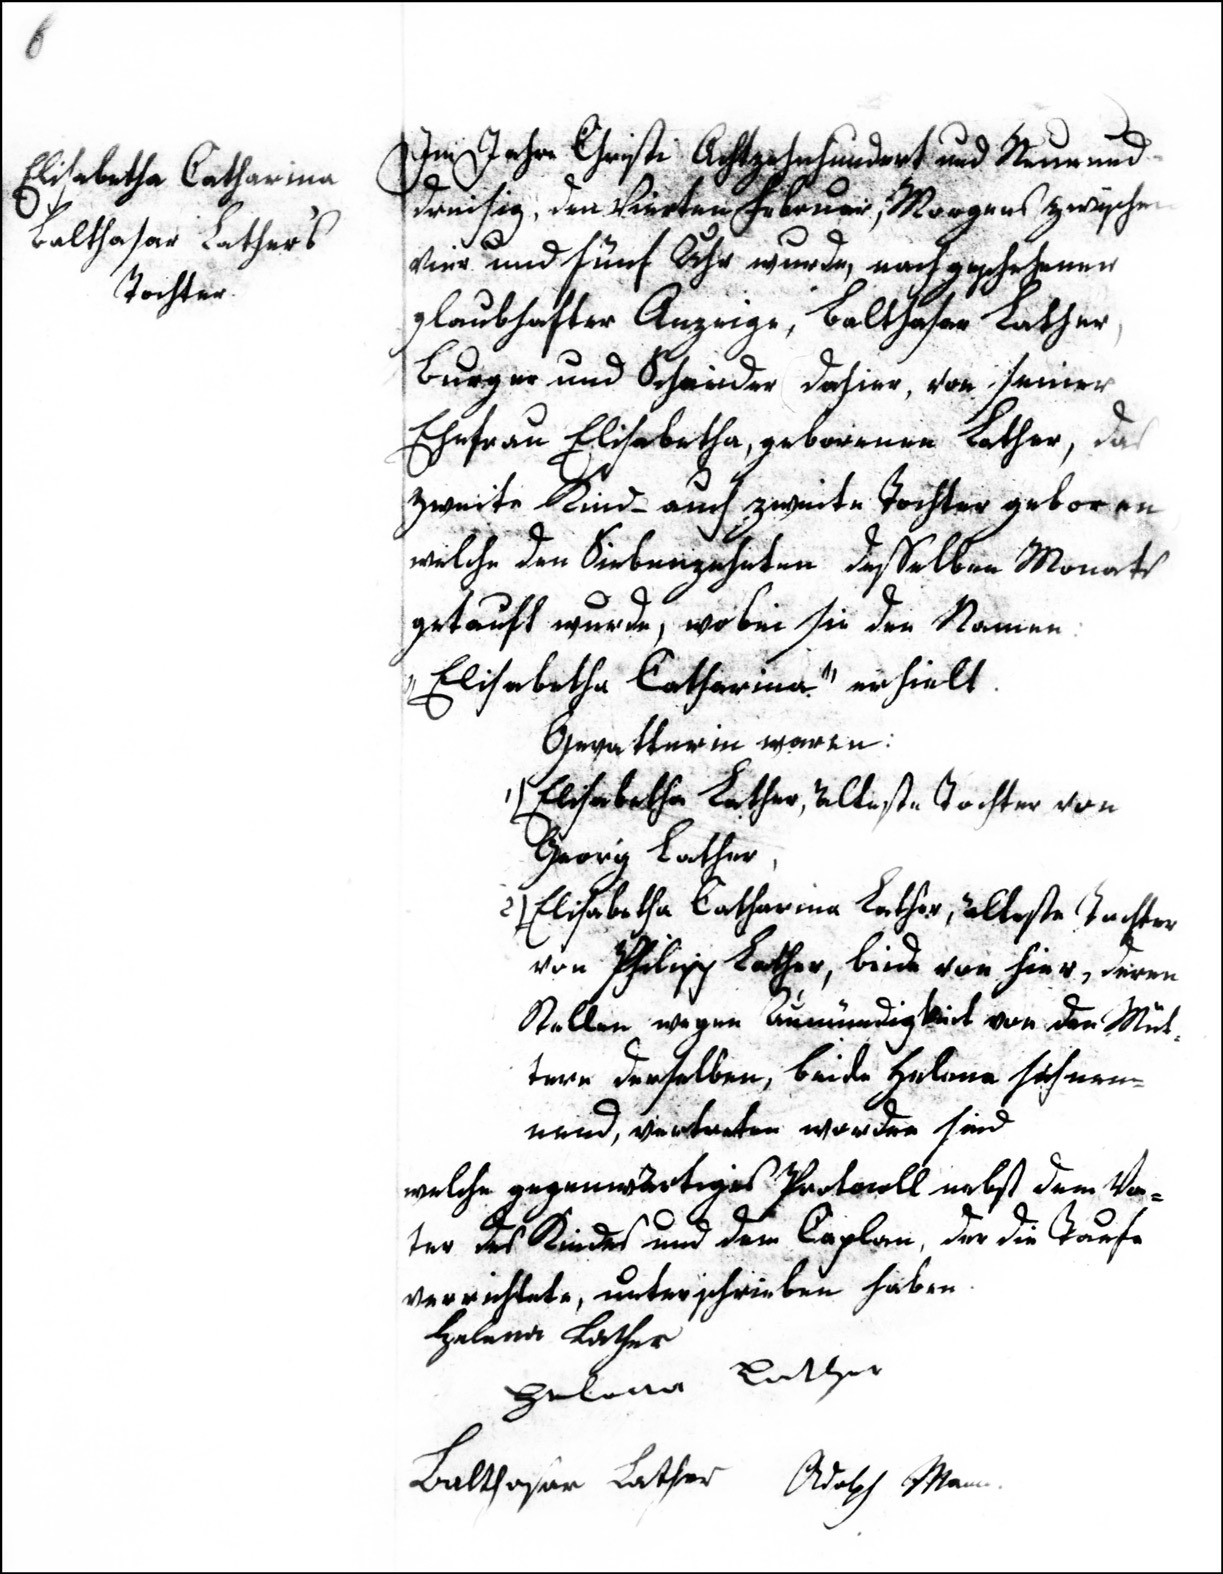 The Birth and Baptismal Record of Elisabetha Catharina Lather